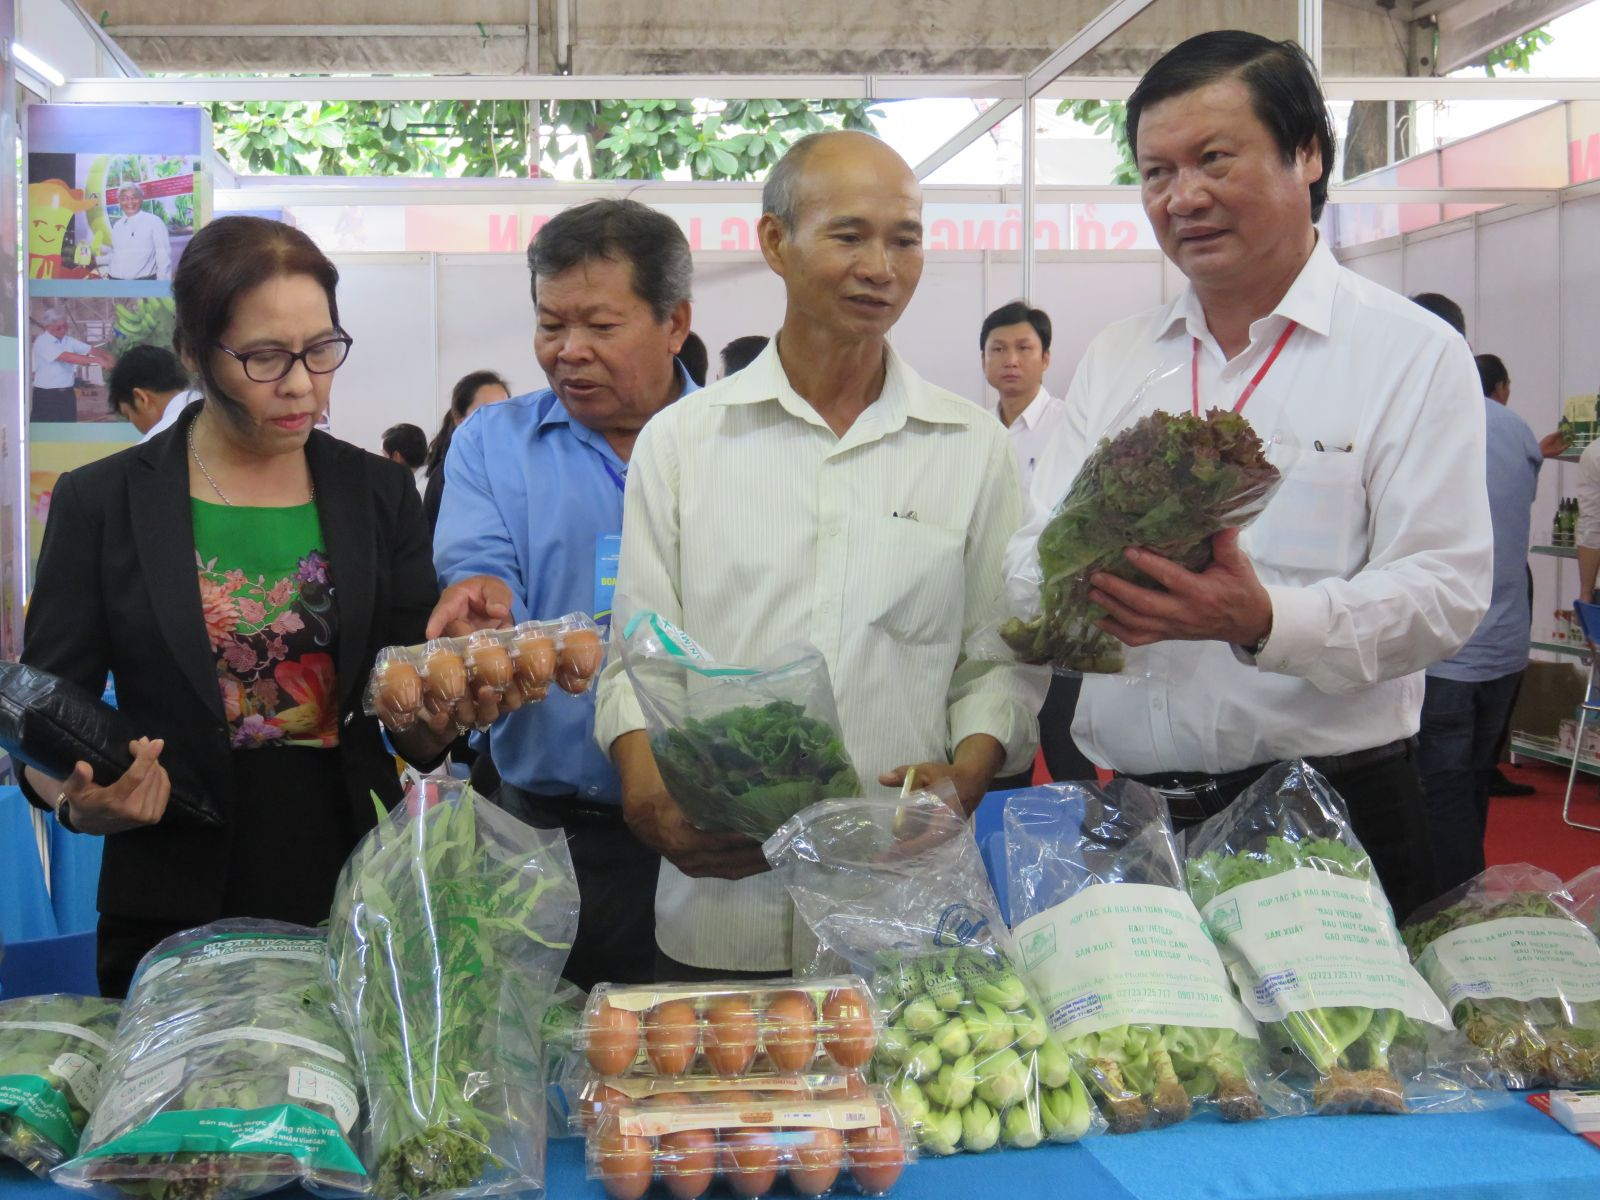 Trade Promotion Program 2019 organized by the Department of Industry and Trade for cooperatives to promote and introduce agricultural products in Ho Chi Minh city